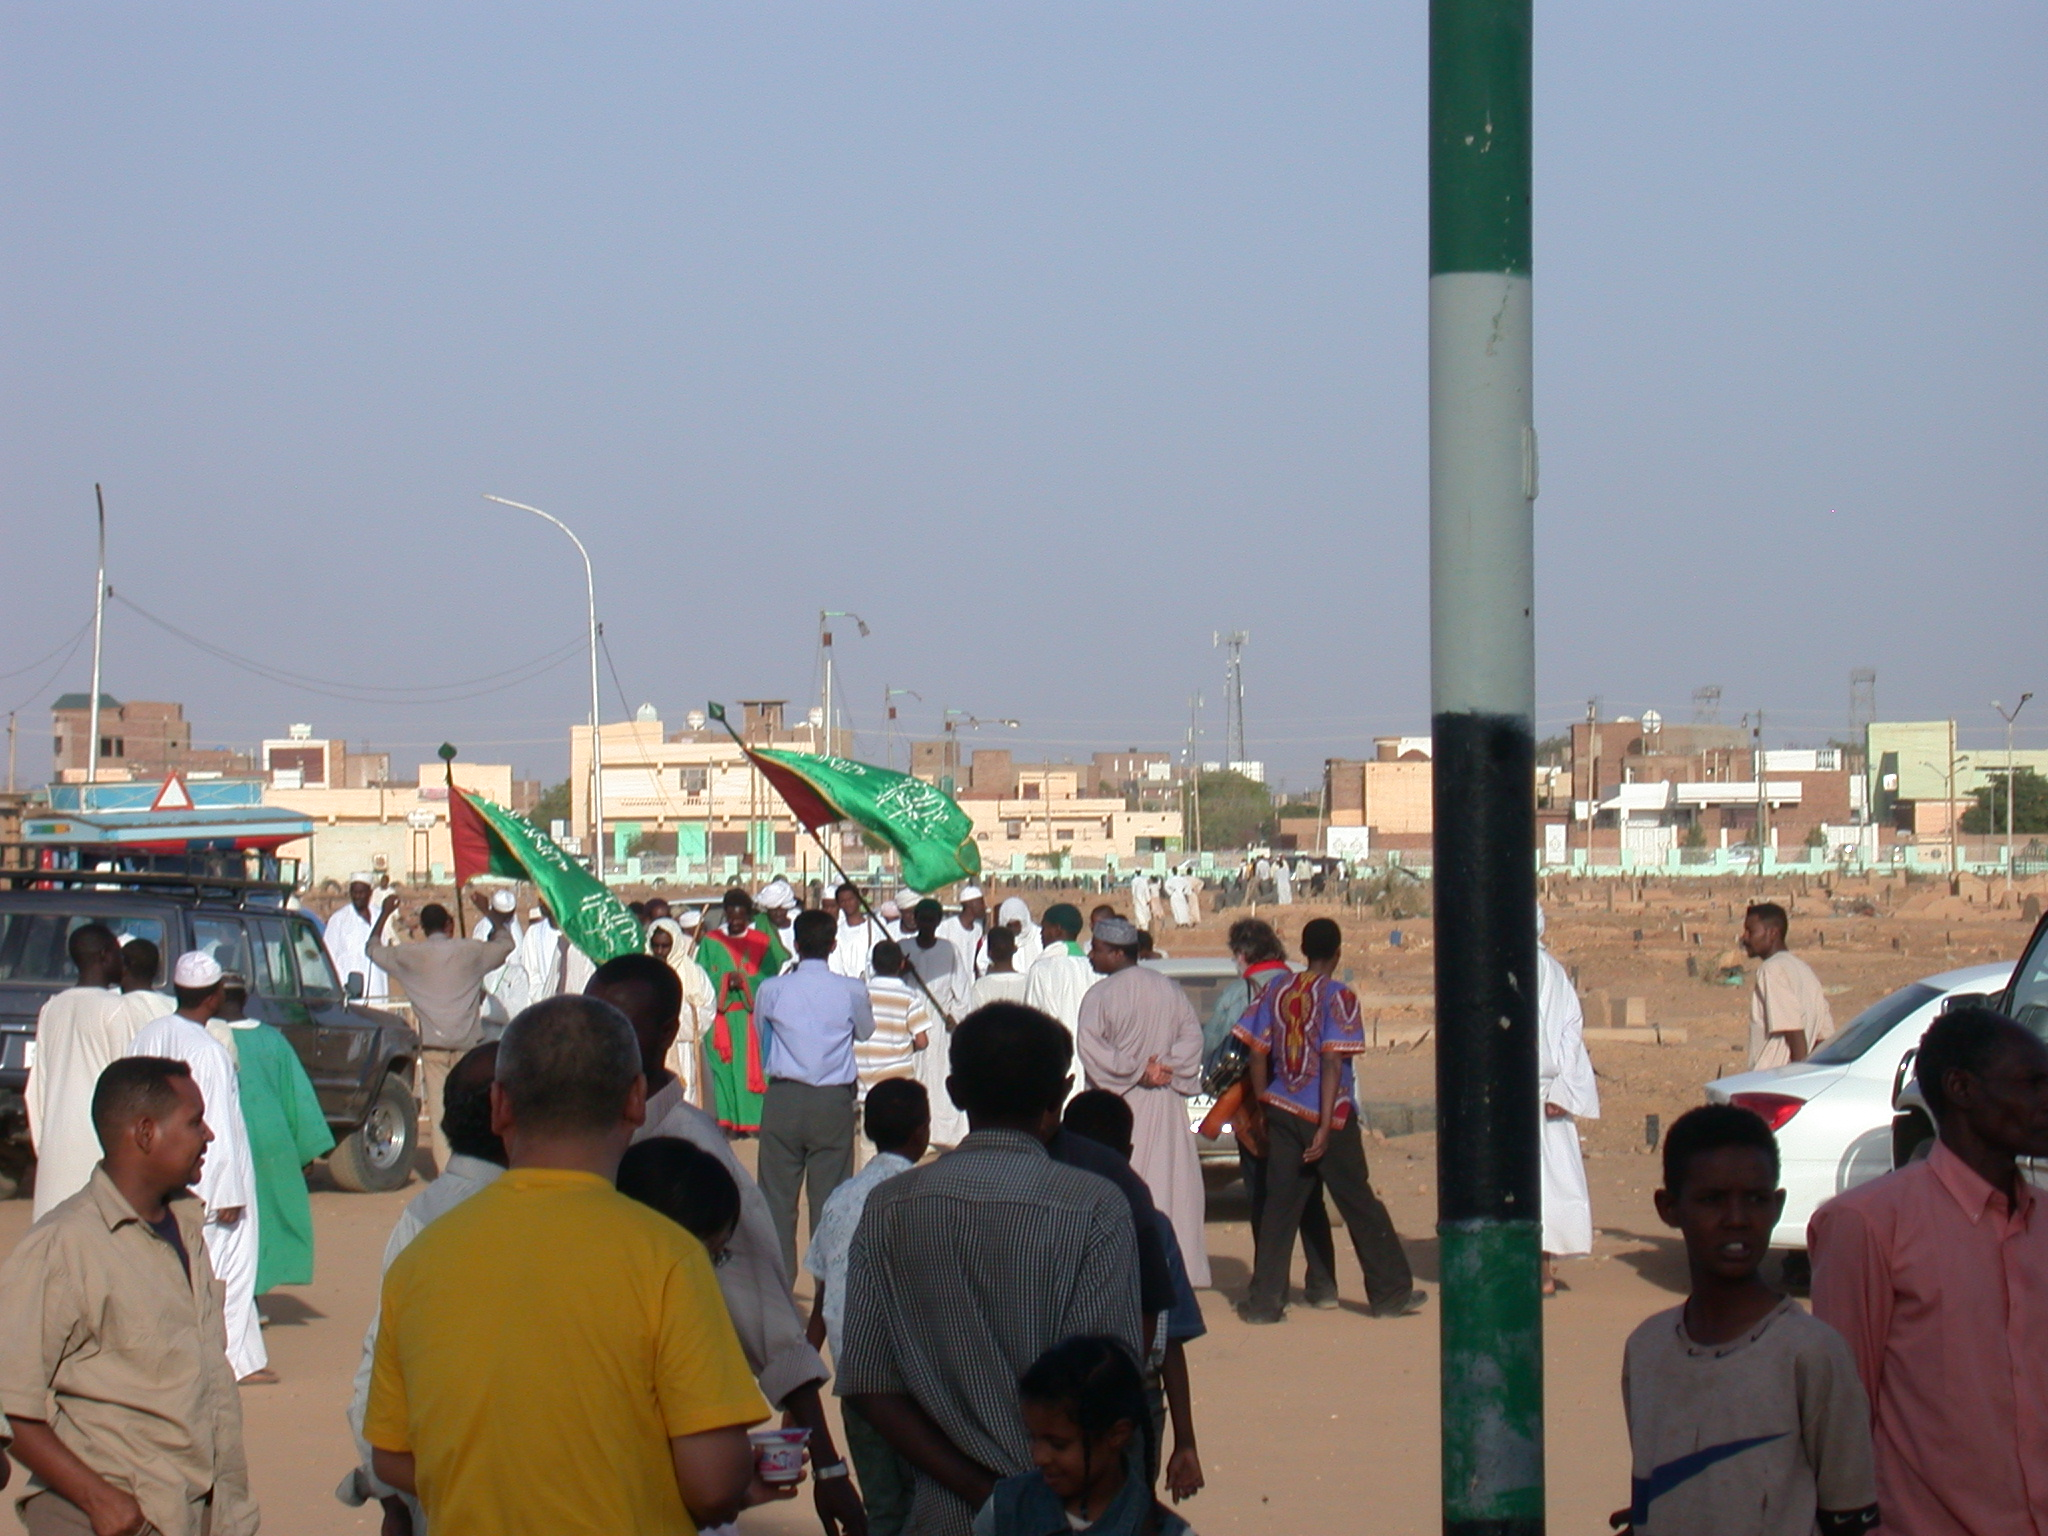 Processing Approaching Tomb at Sufi Dancing Site, Omdurman, Sudan